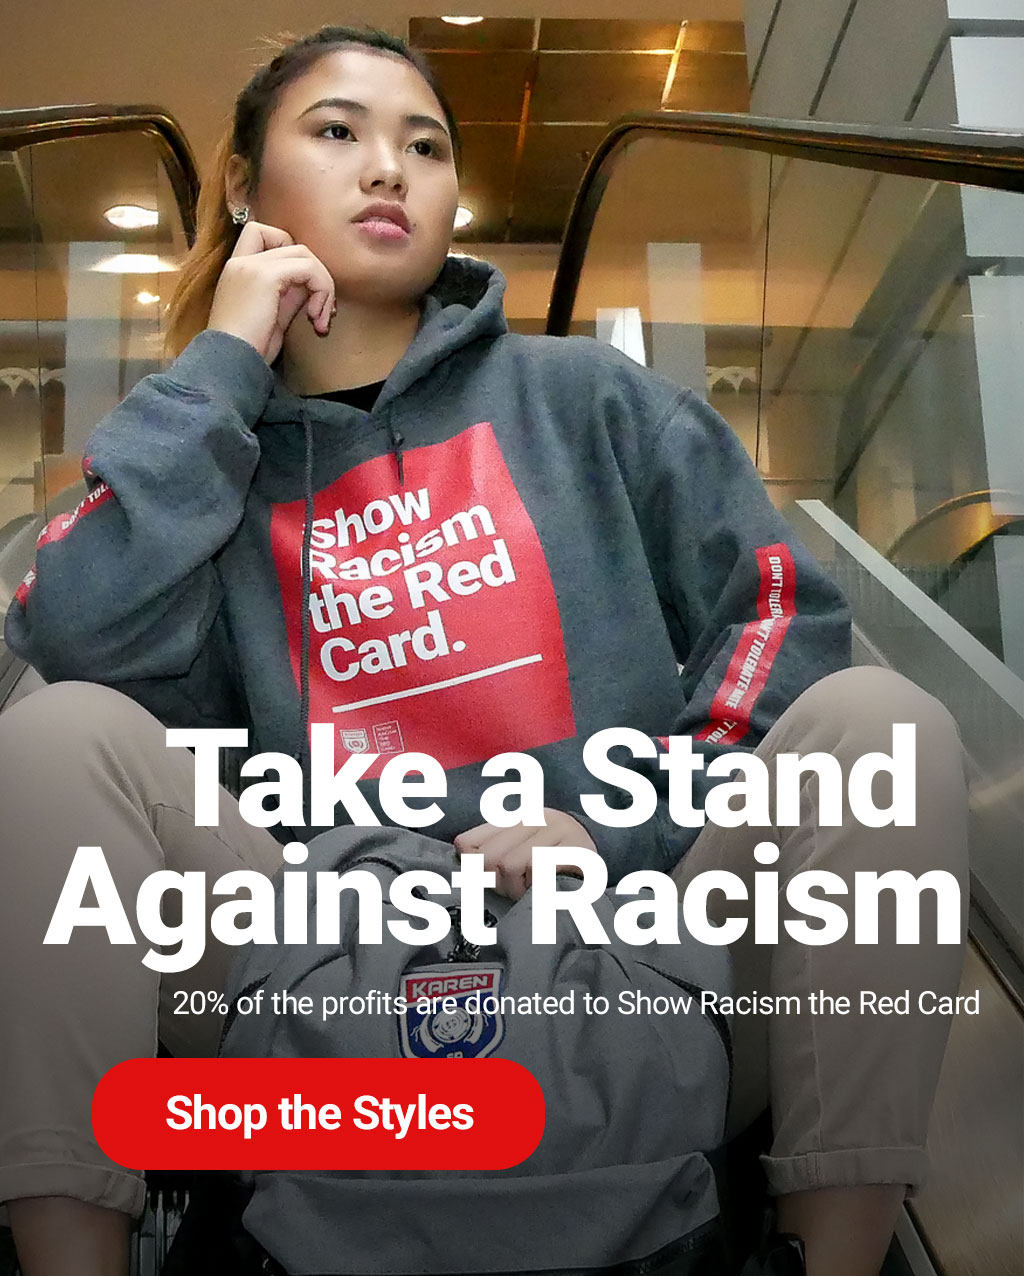 karen-national-team-full-image-header-mobile-show-racism-the-red-card2